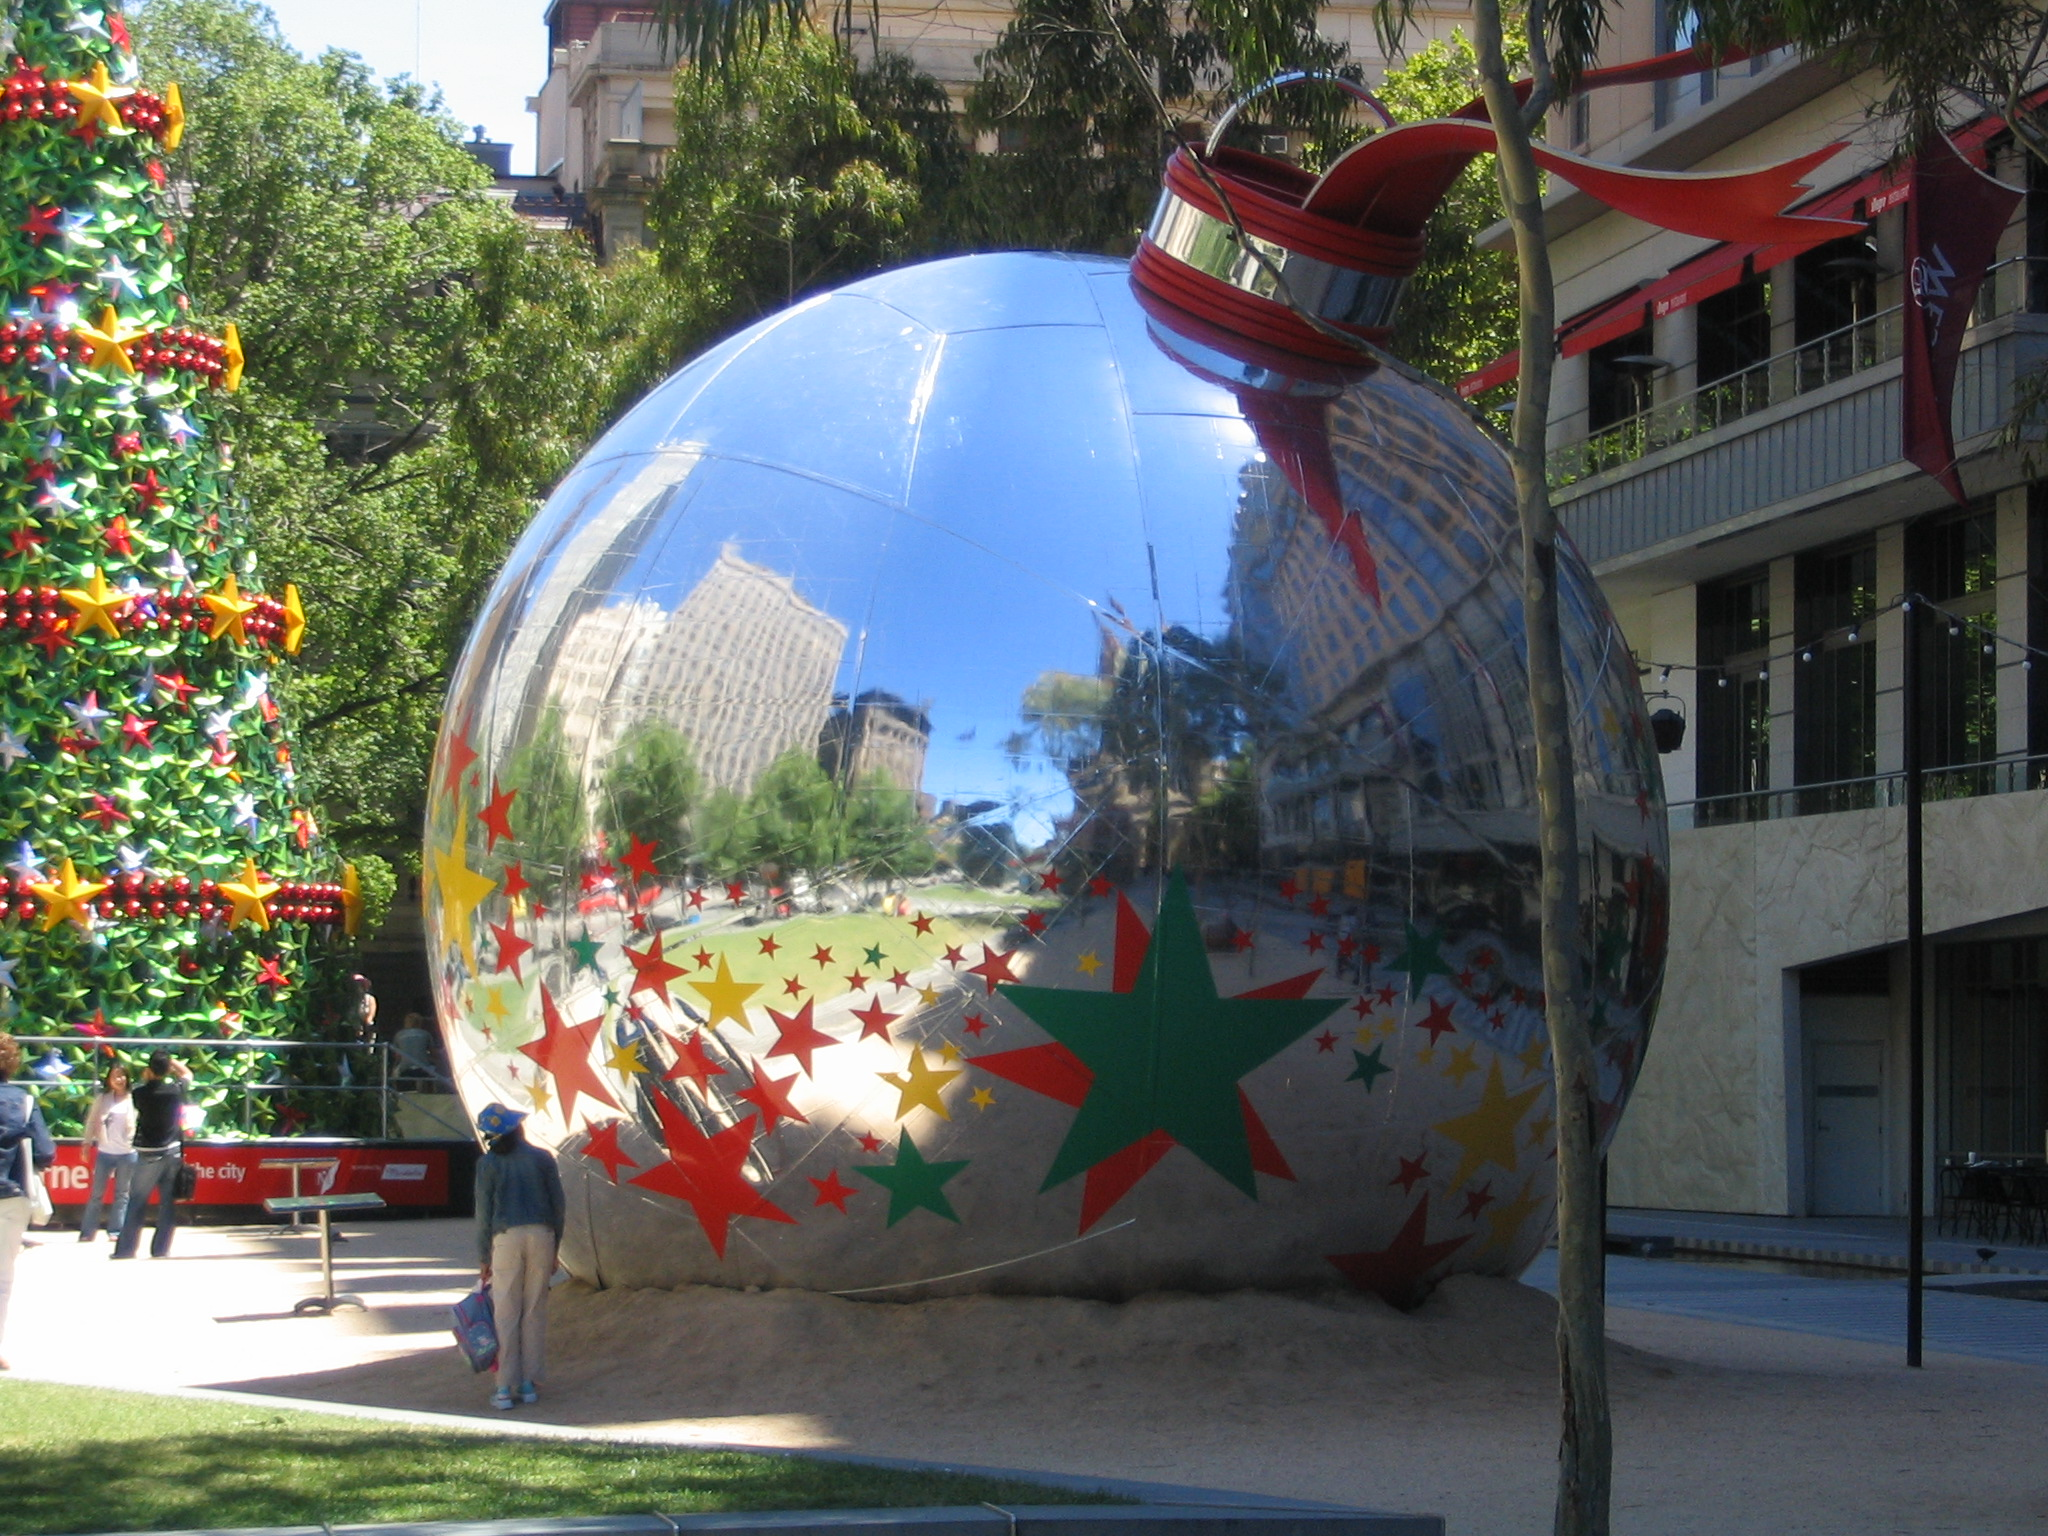 File:Giant christmas ball.jpg - Wikimedia Commons